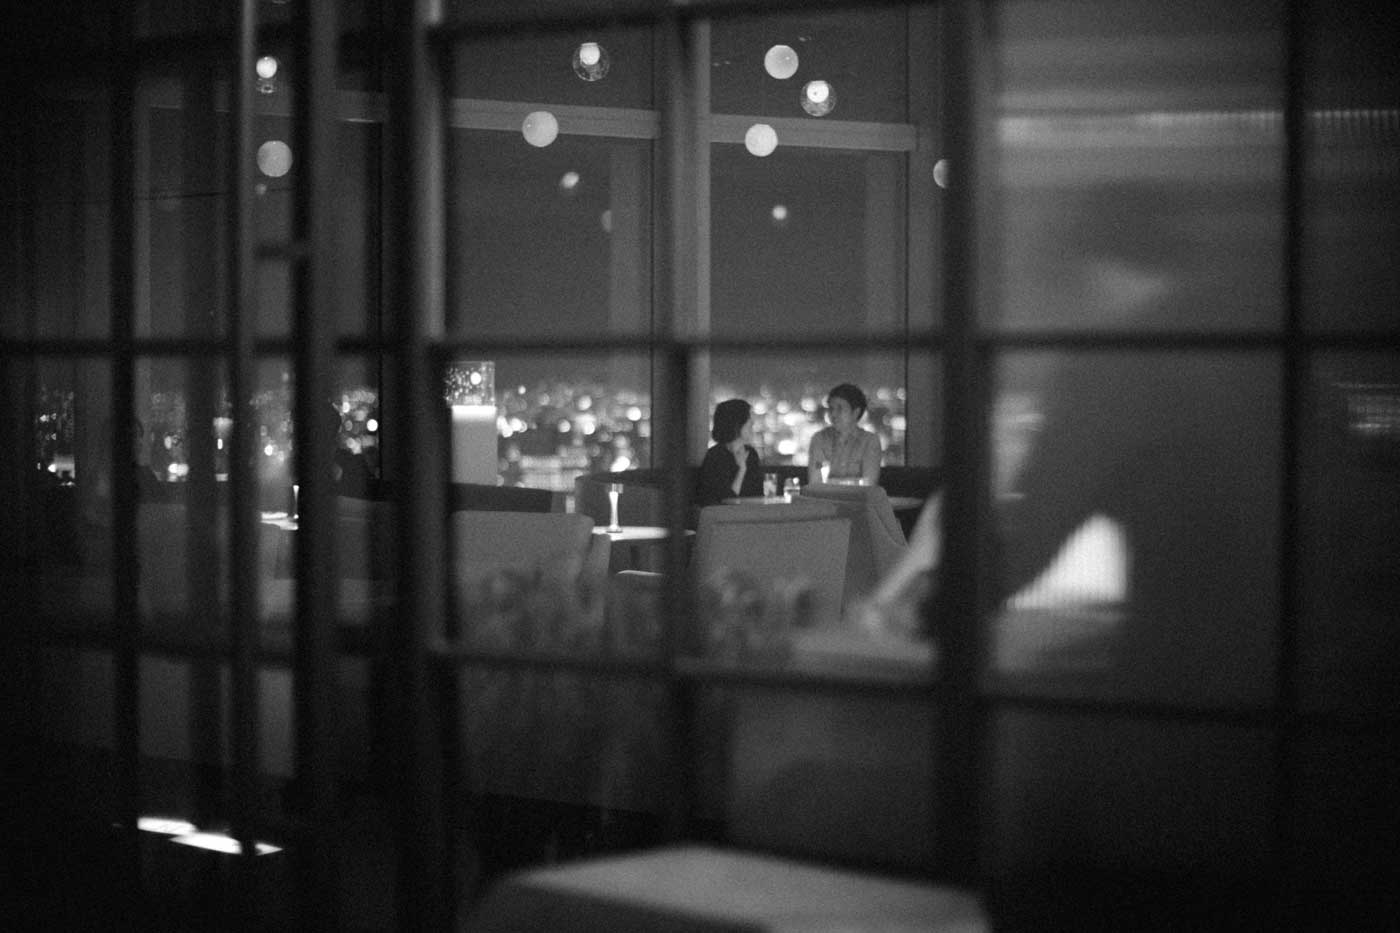 tokyo-2019-trip-japan-visting-museum-viewing-deck-at-night-dinner-place-noctilux-50mm-f1-v4-leica-m10-digital-rangefinder-bw-mood-travel-blog-journal